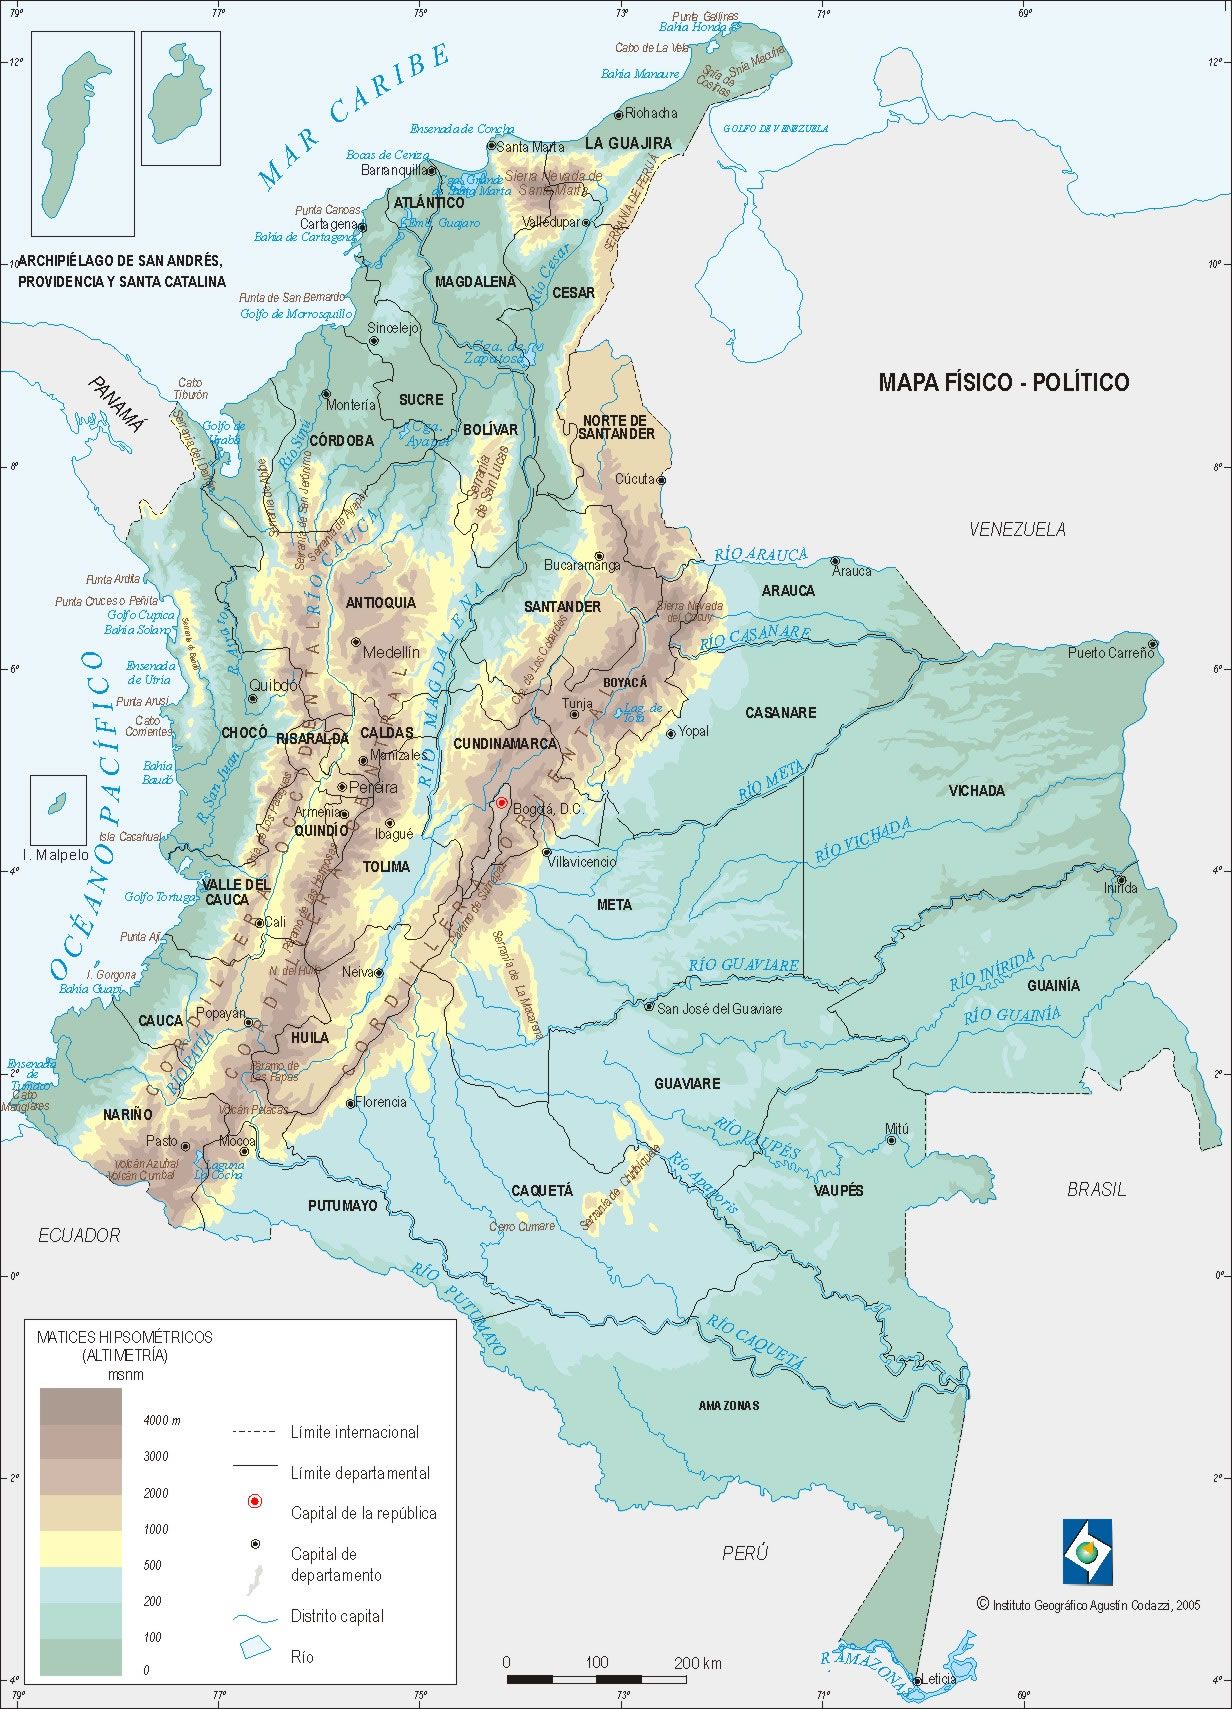 geografia general de colombia: